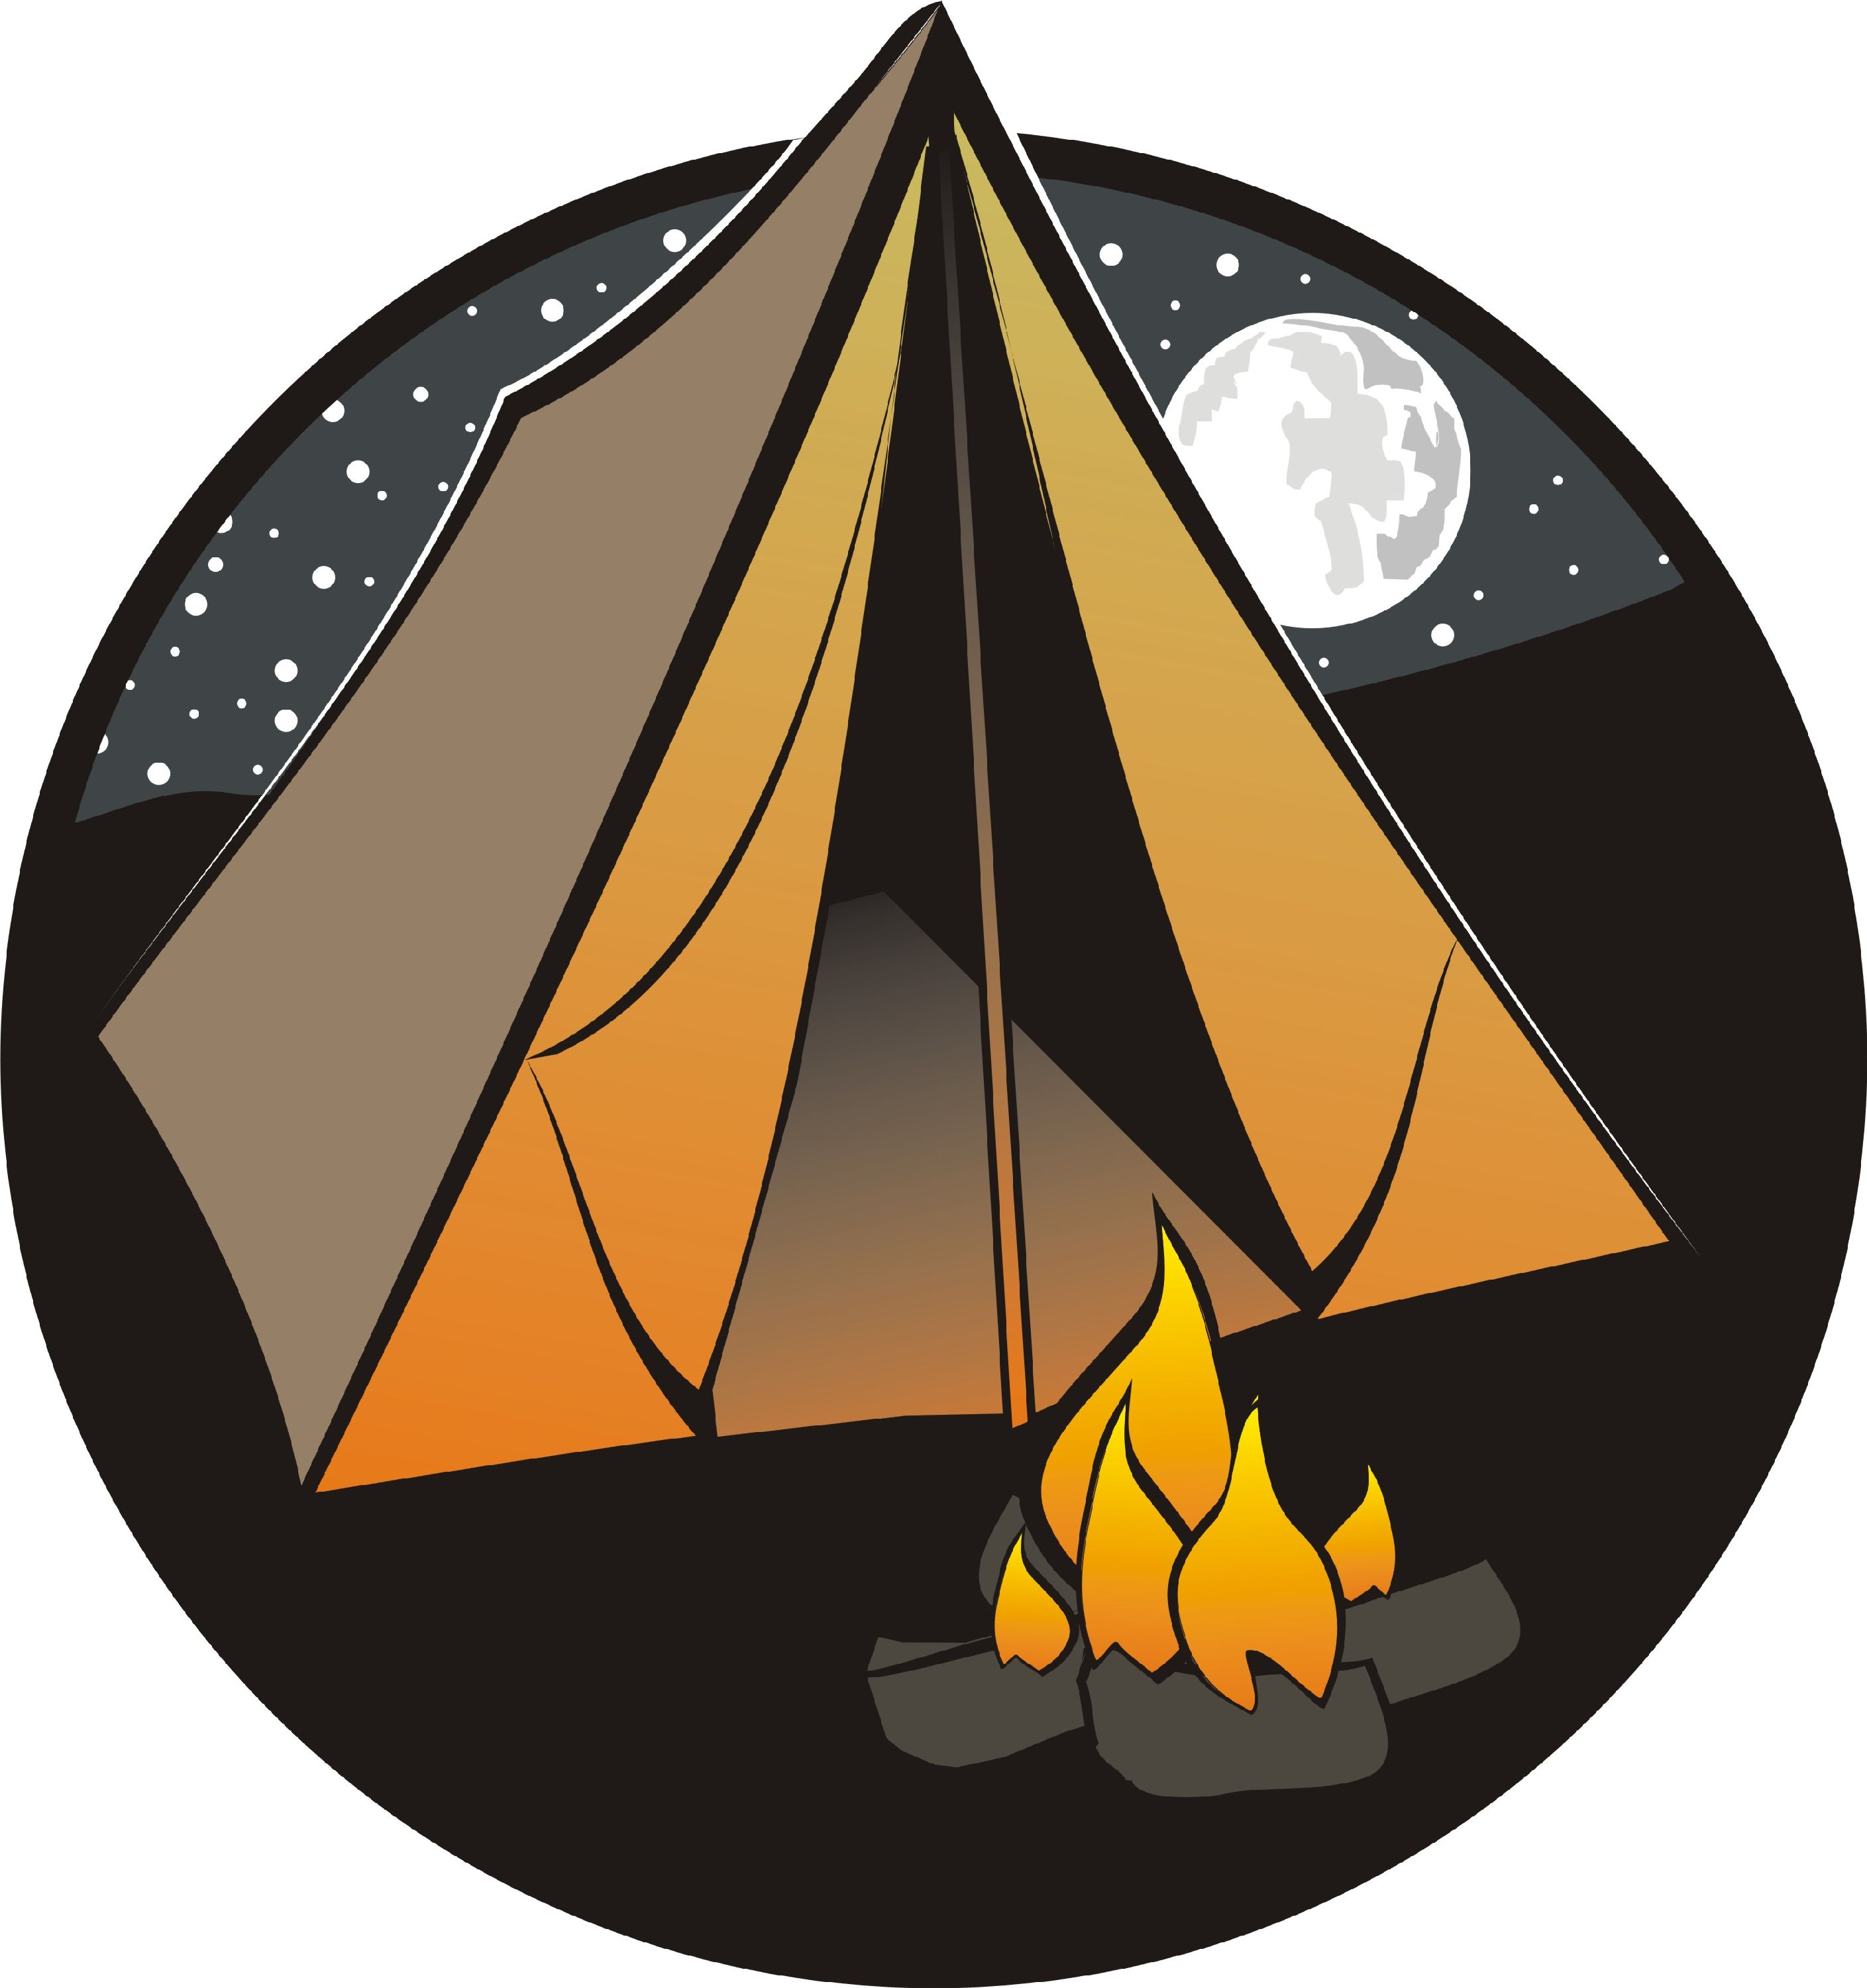 Tent_Camping_Image